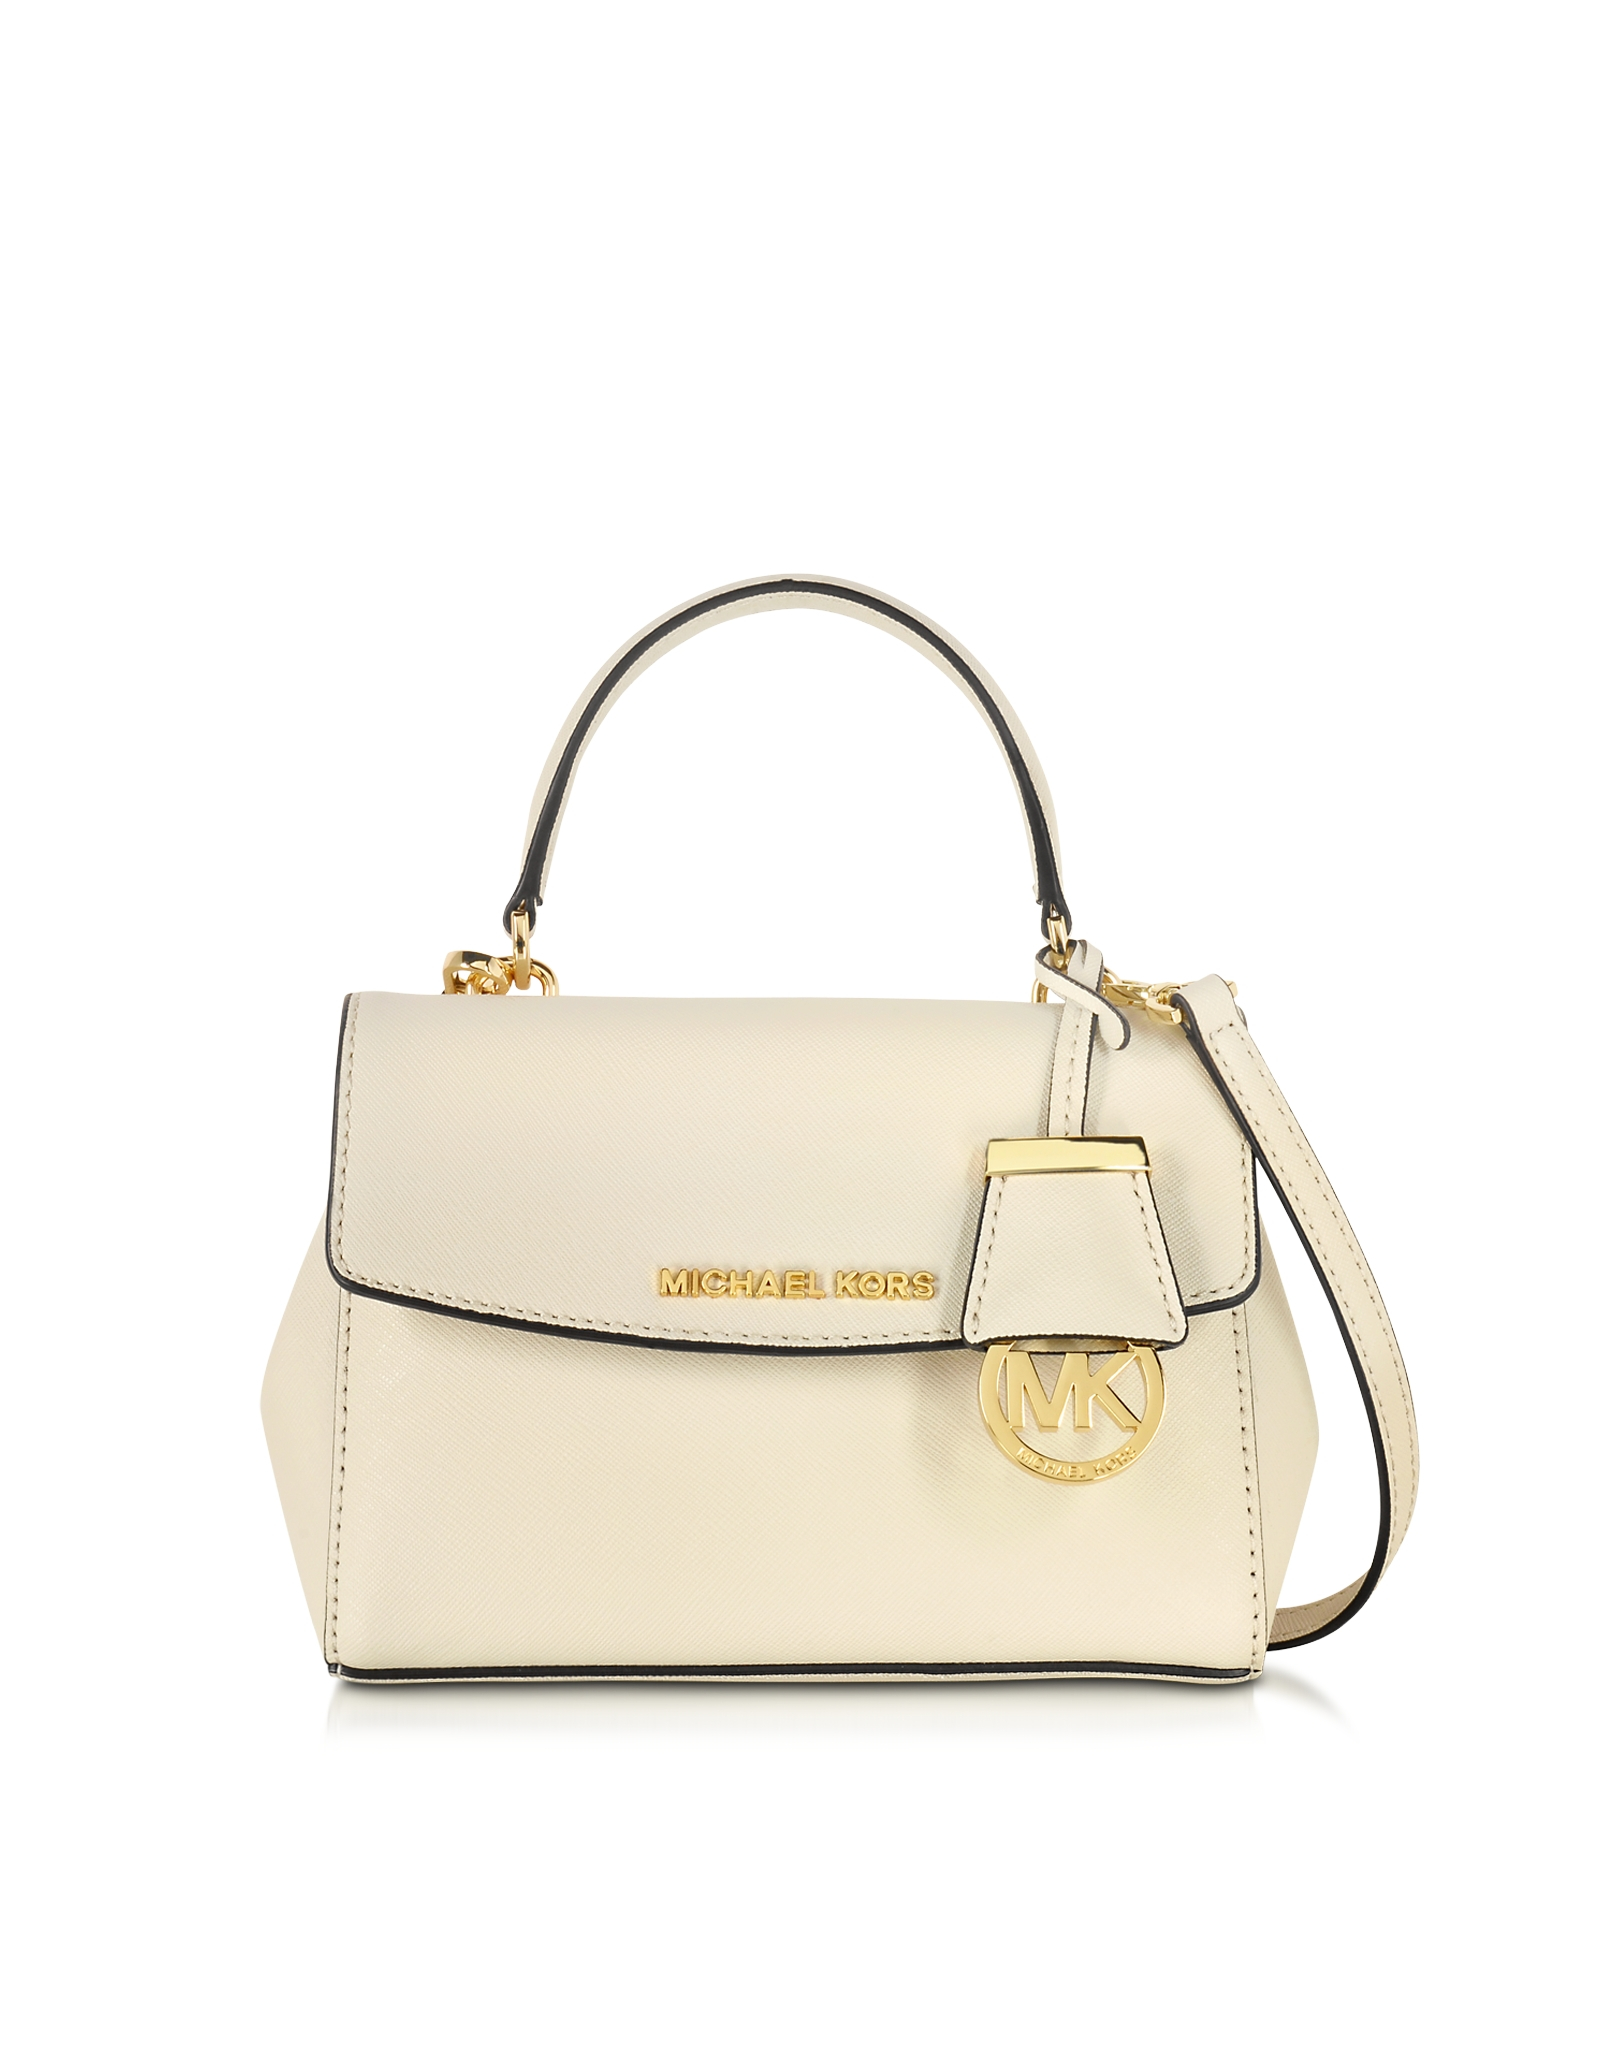 eac707971418 Lyst - Michael Kors Ava Ecru Saffiano Leather Extra Small Crossbody ...